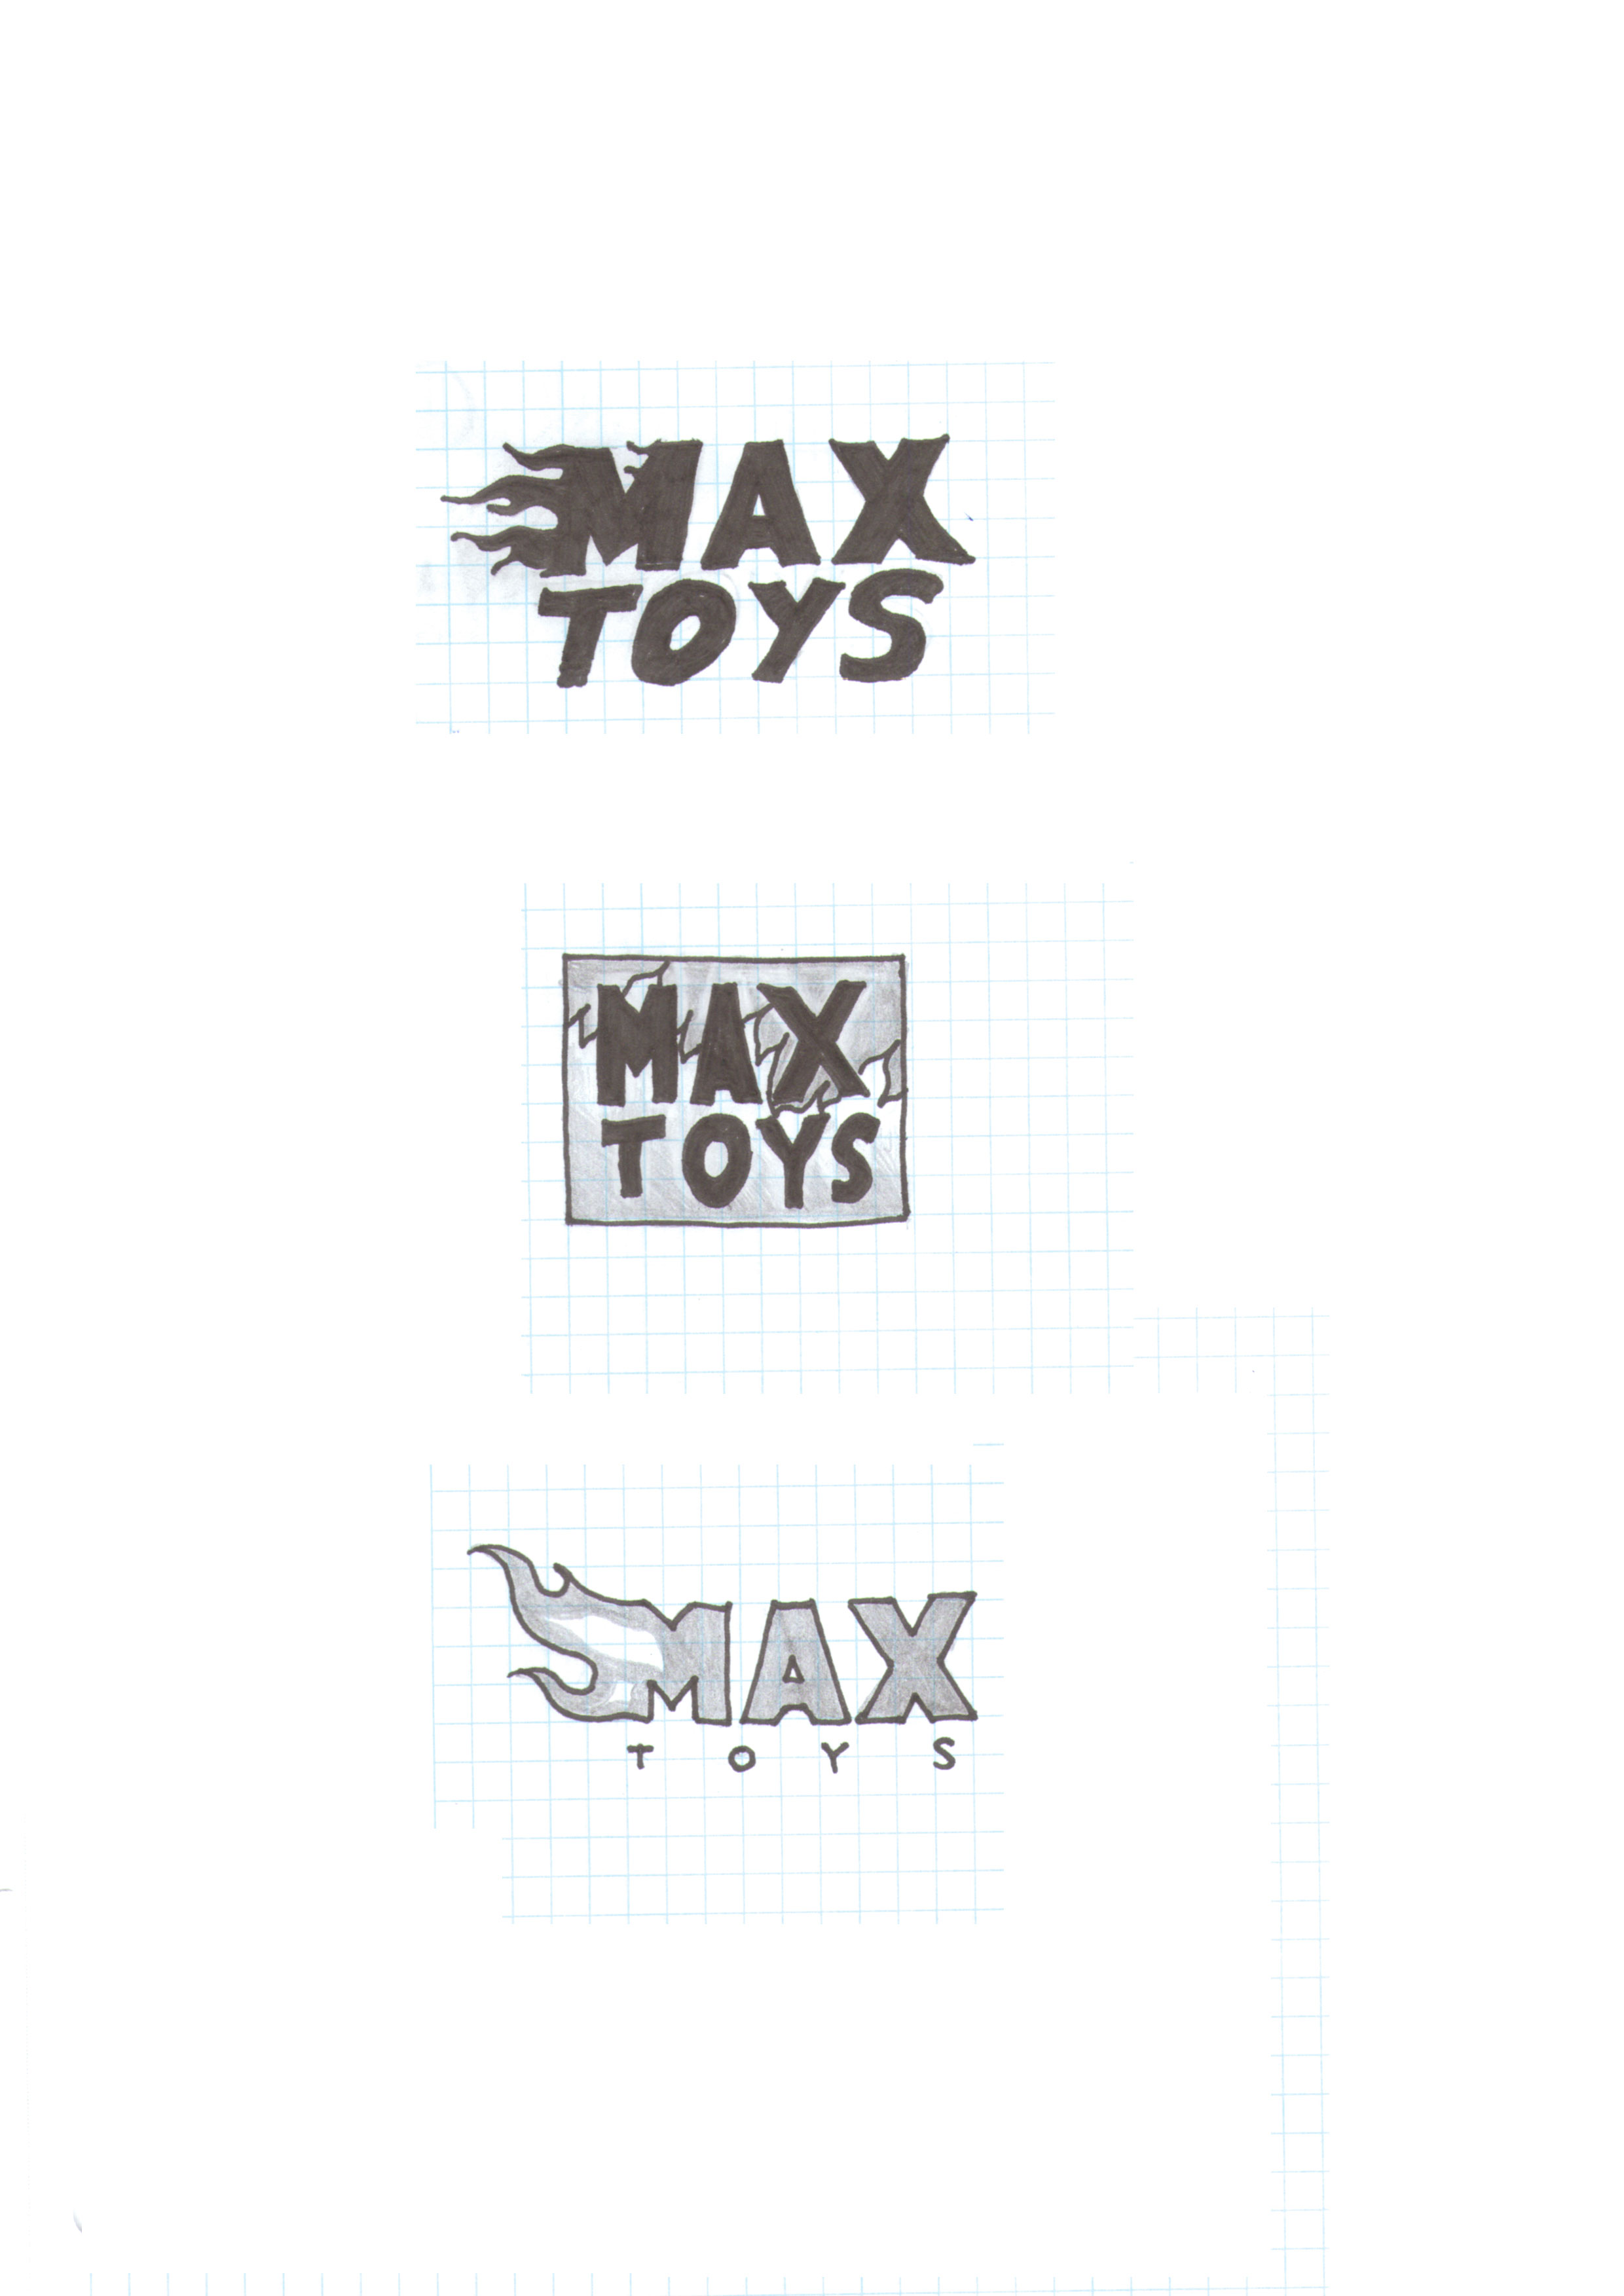 Click to enlarge image eskiz_MAXTOYS2.jpg